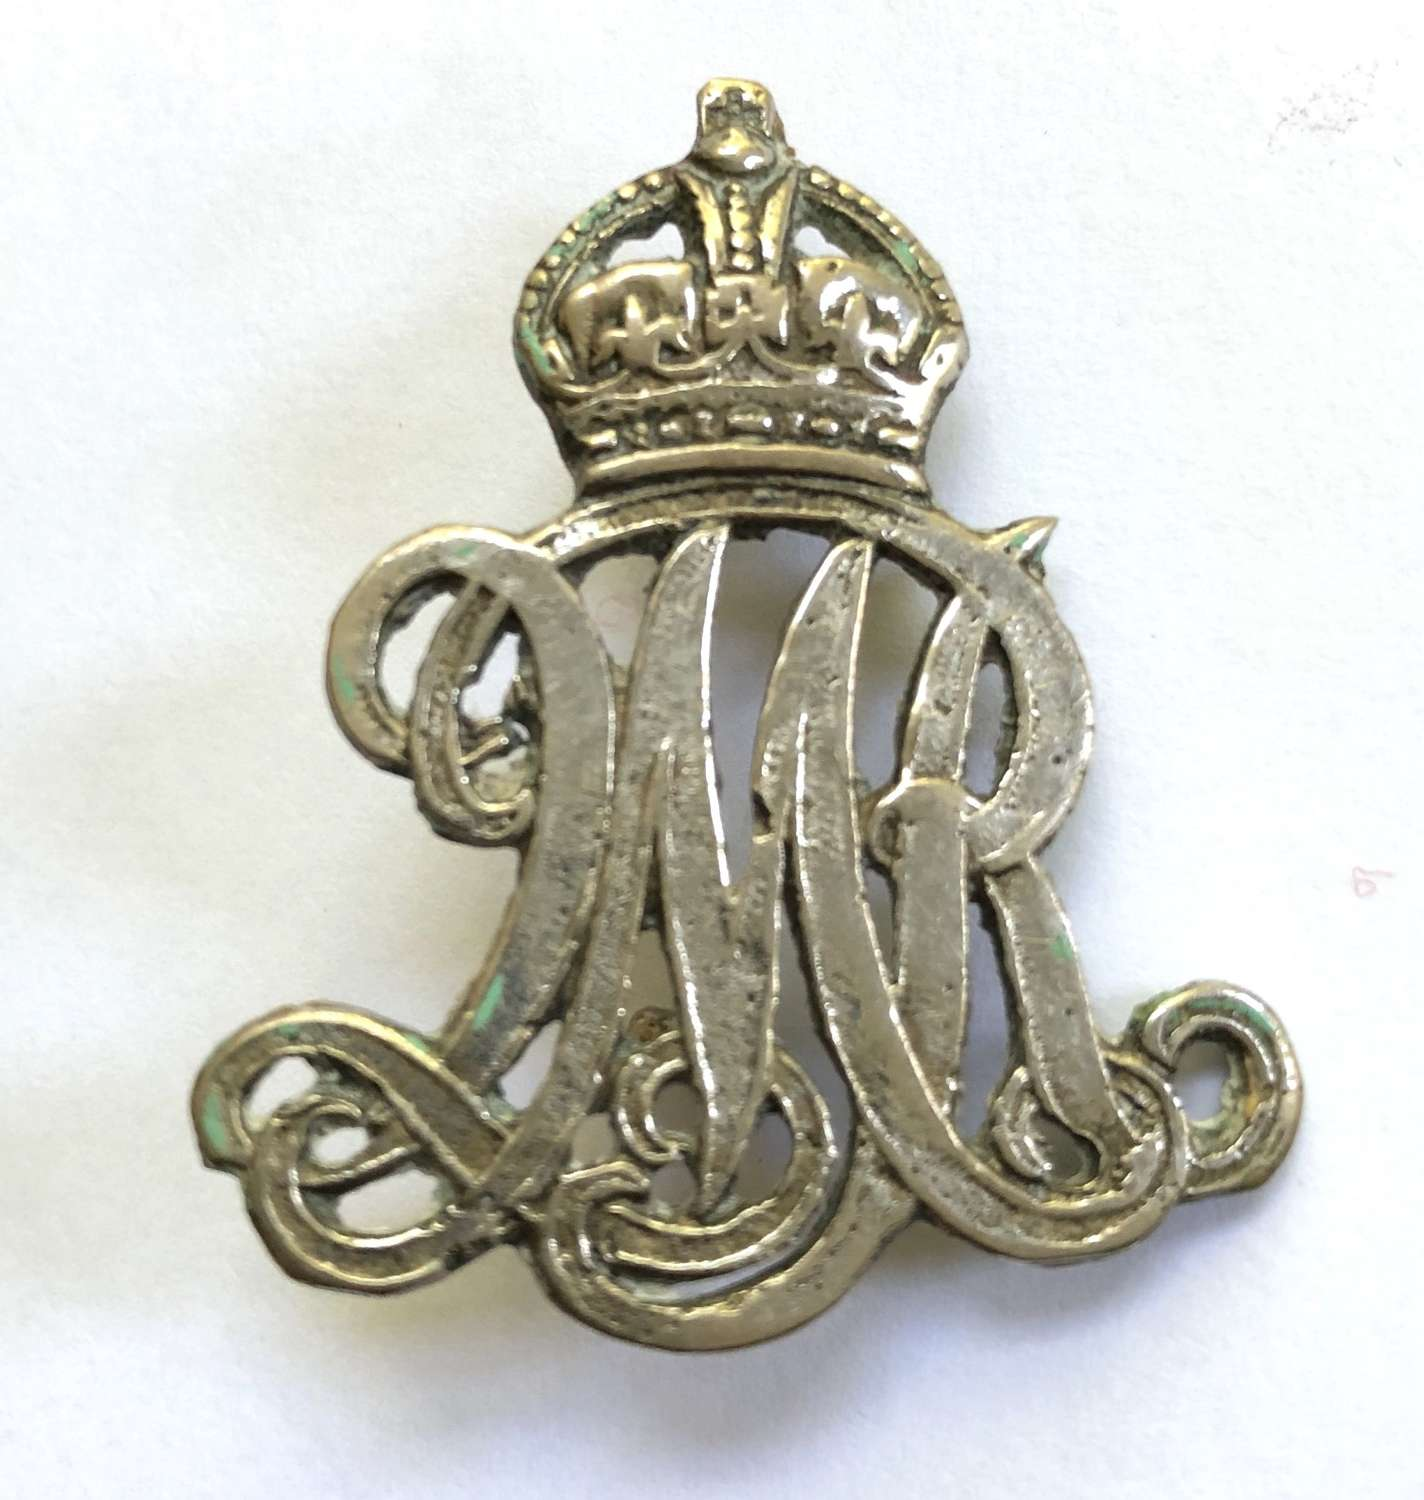 Queen Mary's Own Surrey Yeomanry NCO's arm badge